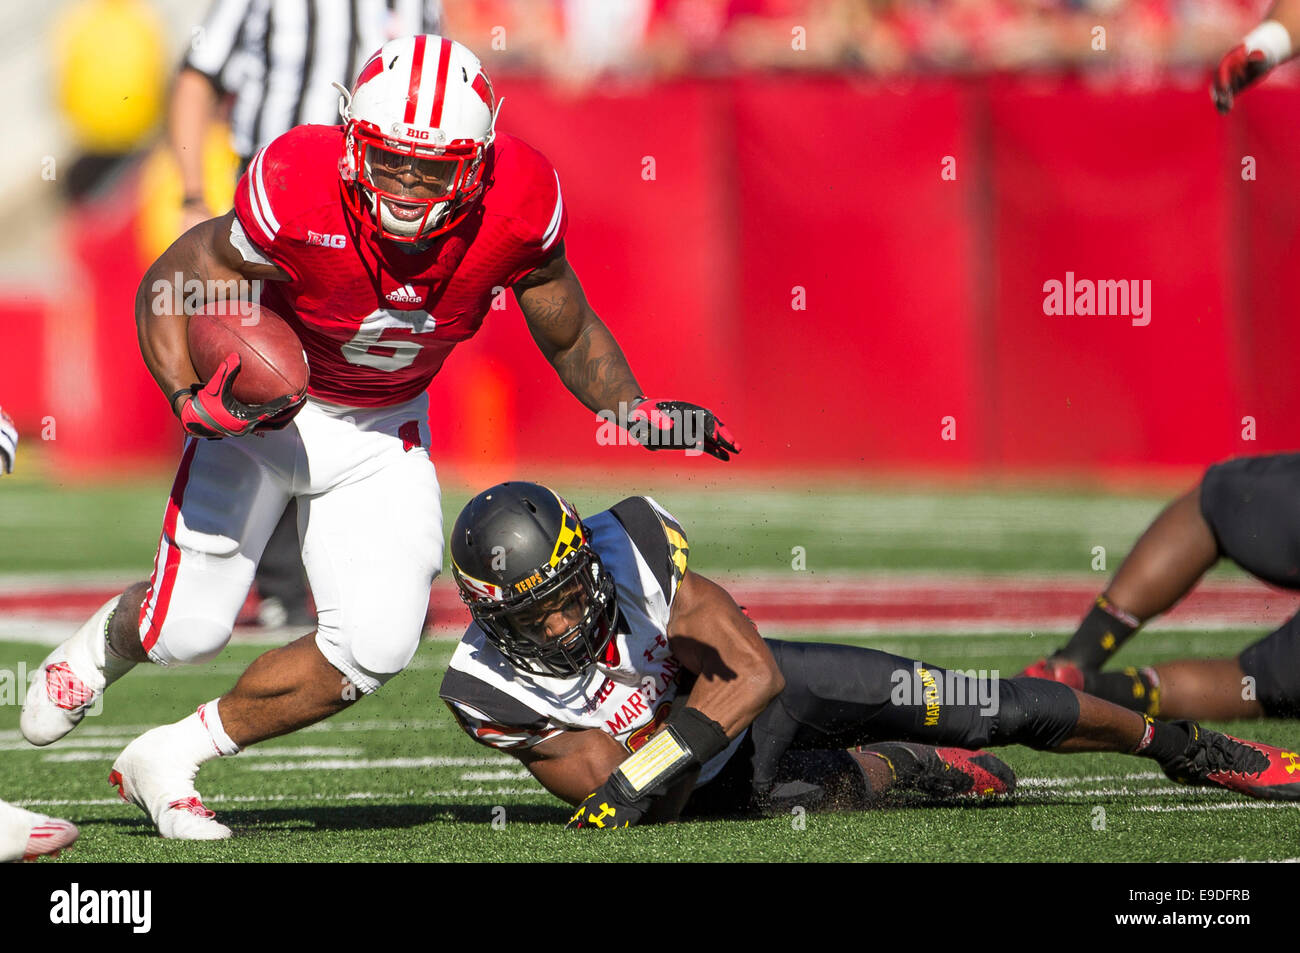 October 25, 2014: Wisconsin Badgers running back Corey Clement #6 rushes the ball during the NCAA Football game - Stock Image